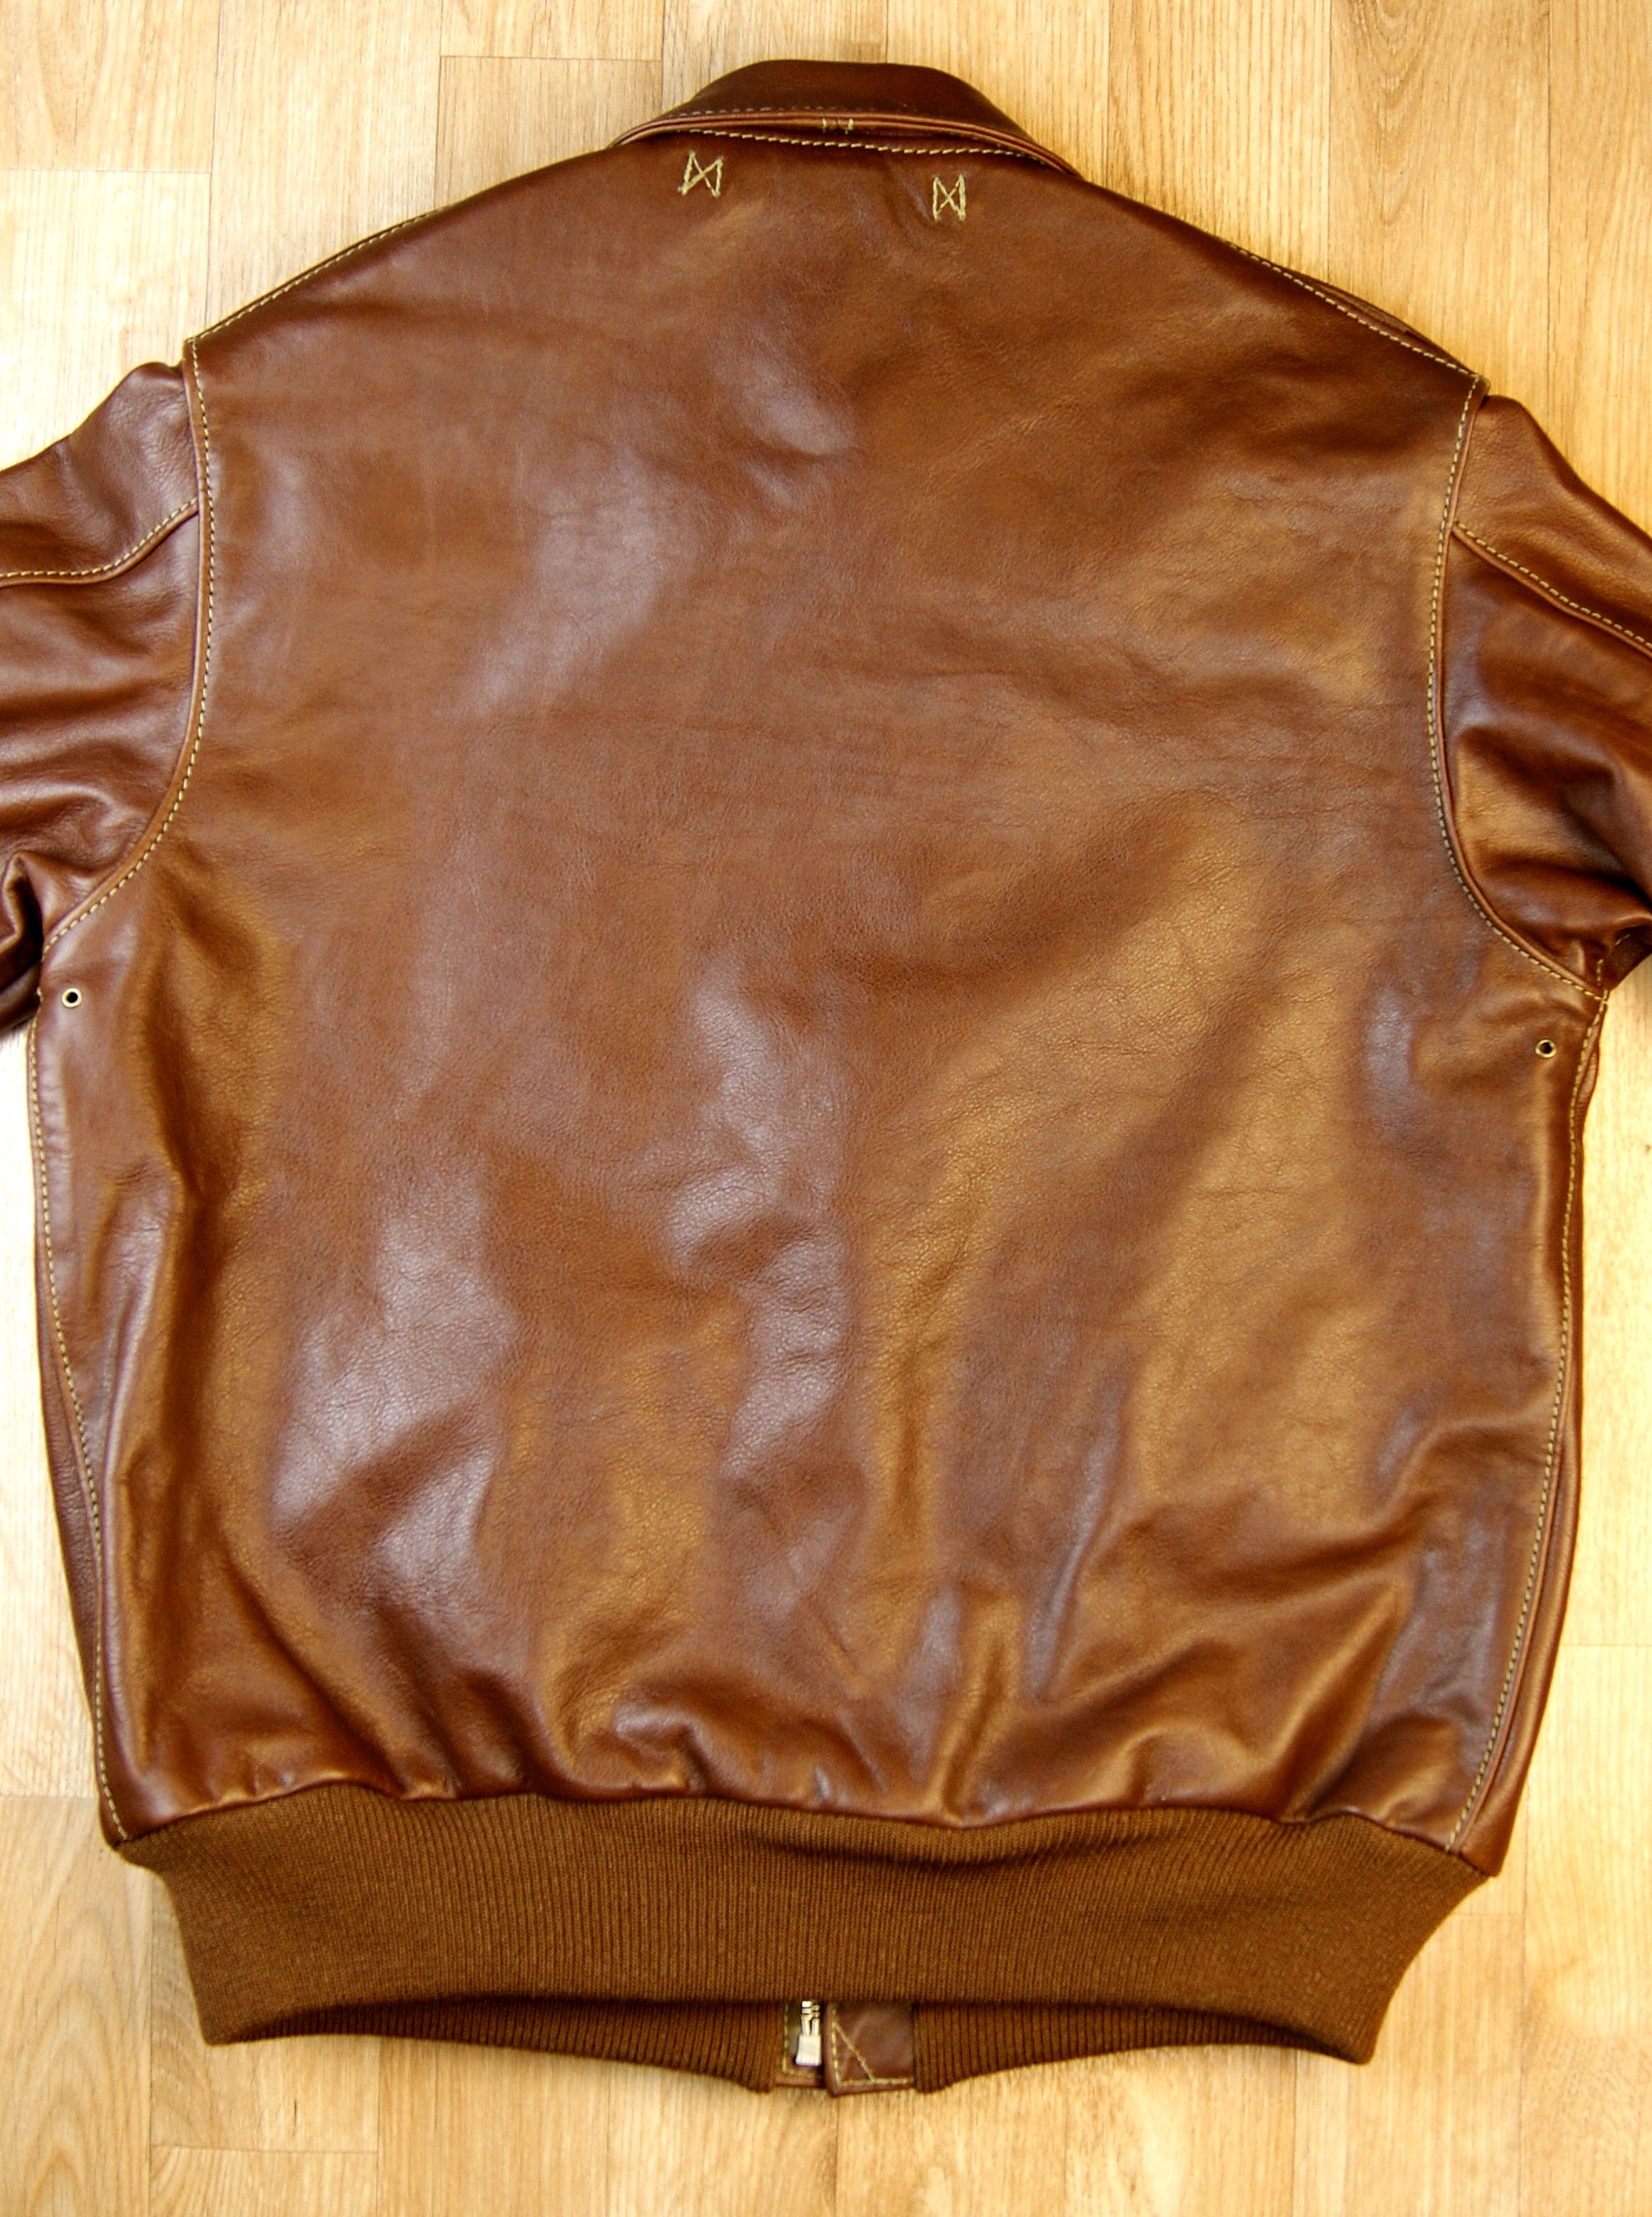 Aero A-2 Military Flight Jacket, size 42, Russet Vicenza Horsehide